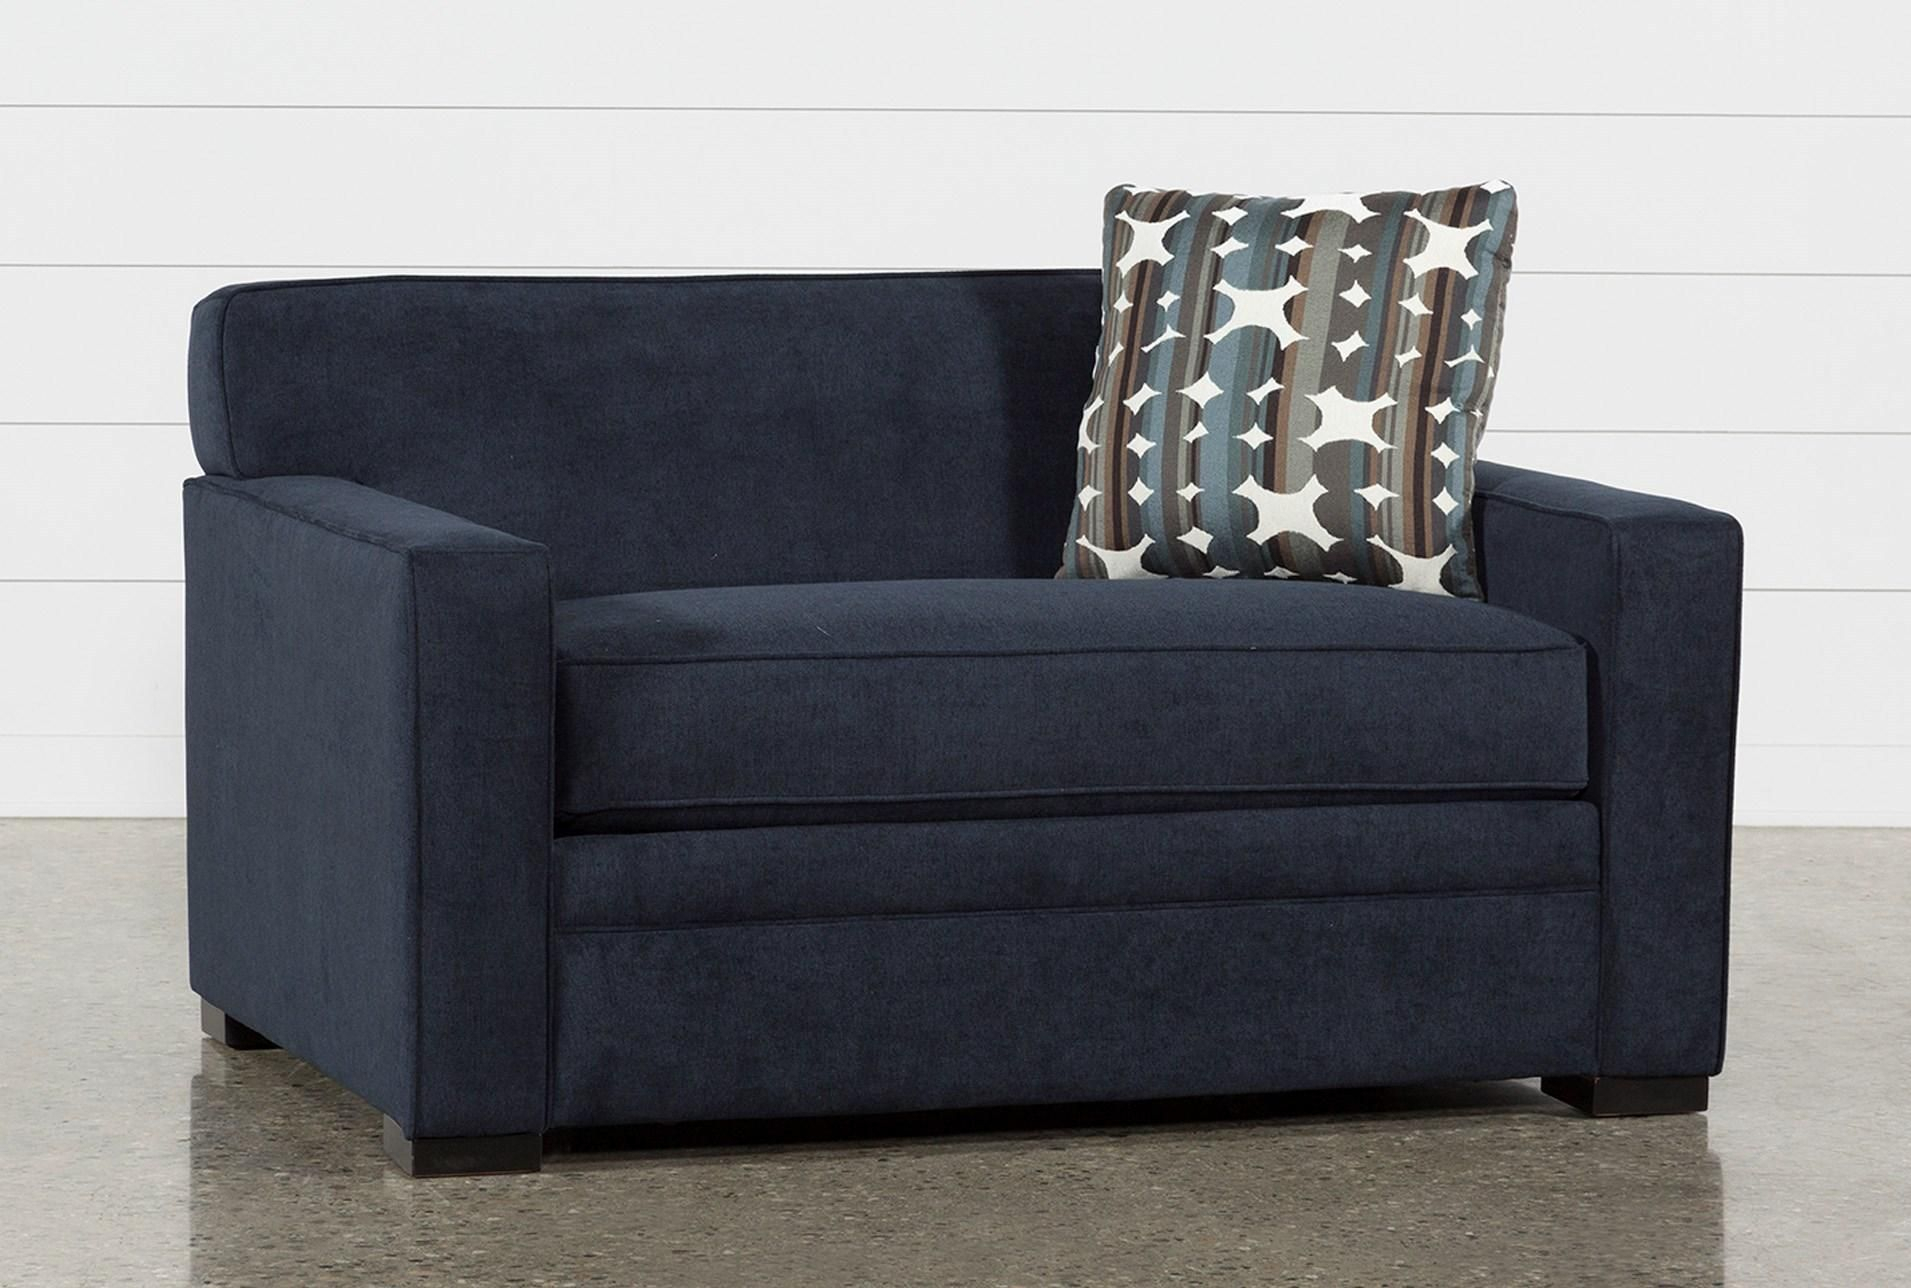 Ethan Ii Pillow Top Twin Sleeper   Loveseat Sofa Bed, Sofa In Twin Nancy Sectional Sofa Beds With Storage (View 14 of 15)